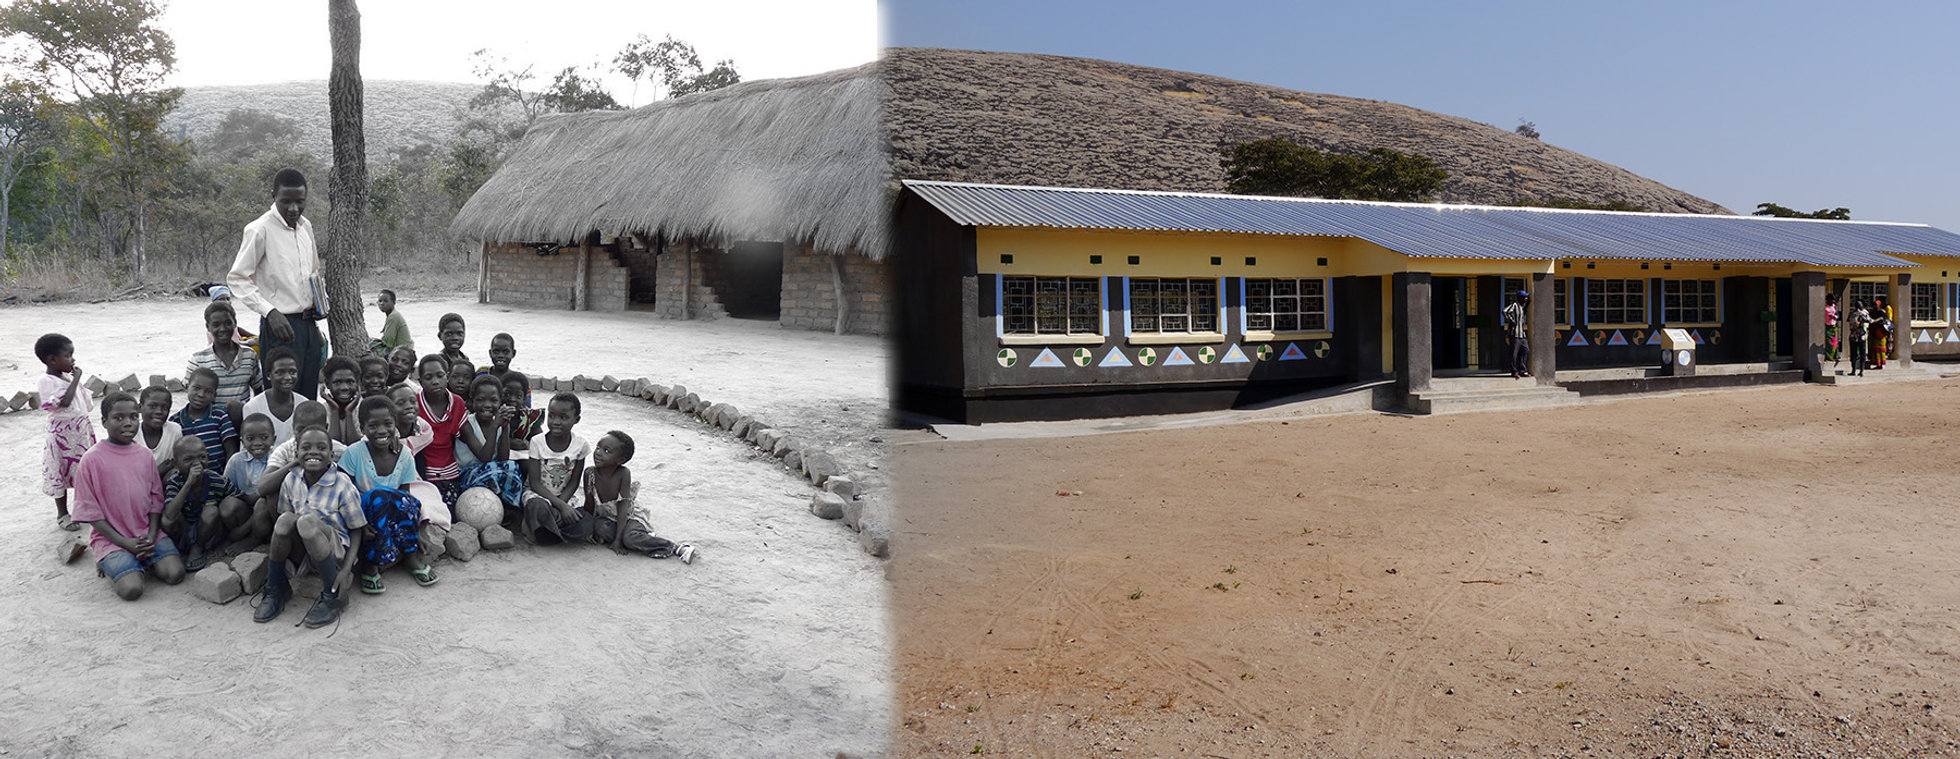 Chibanga School, before and after